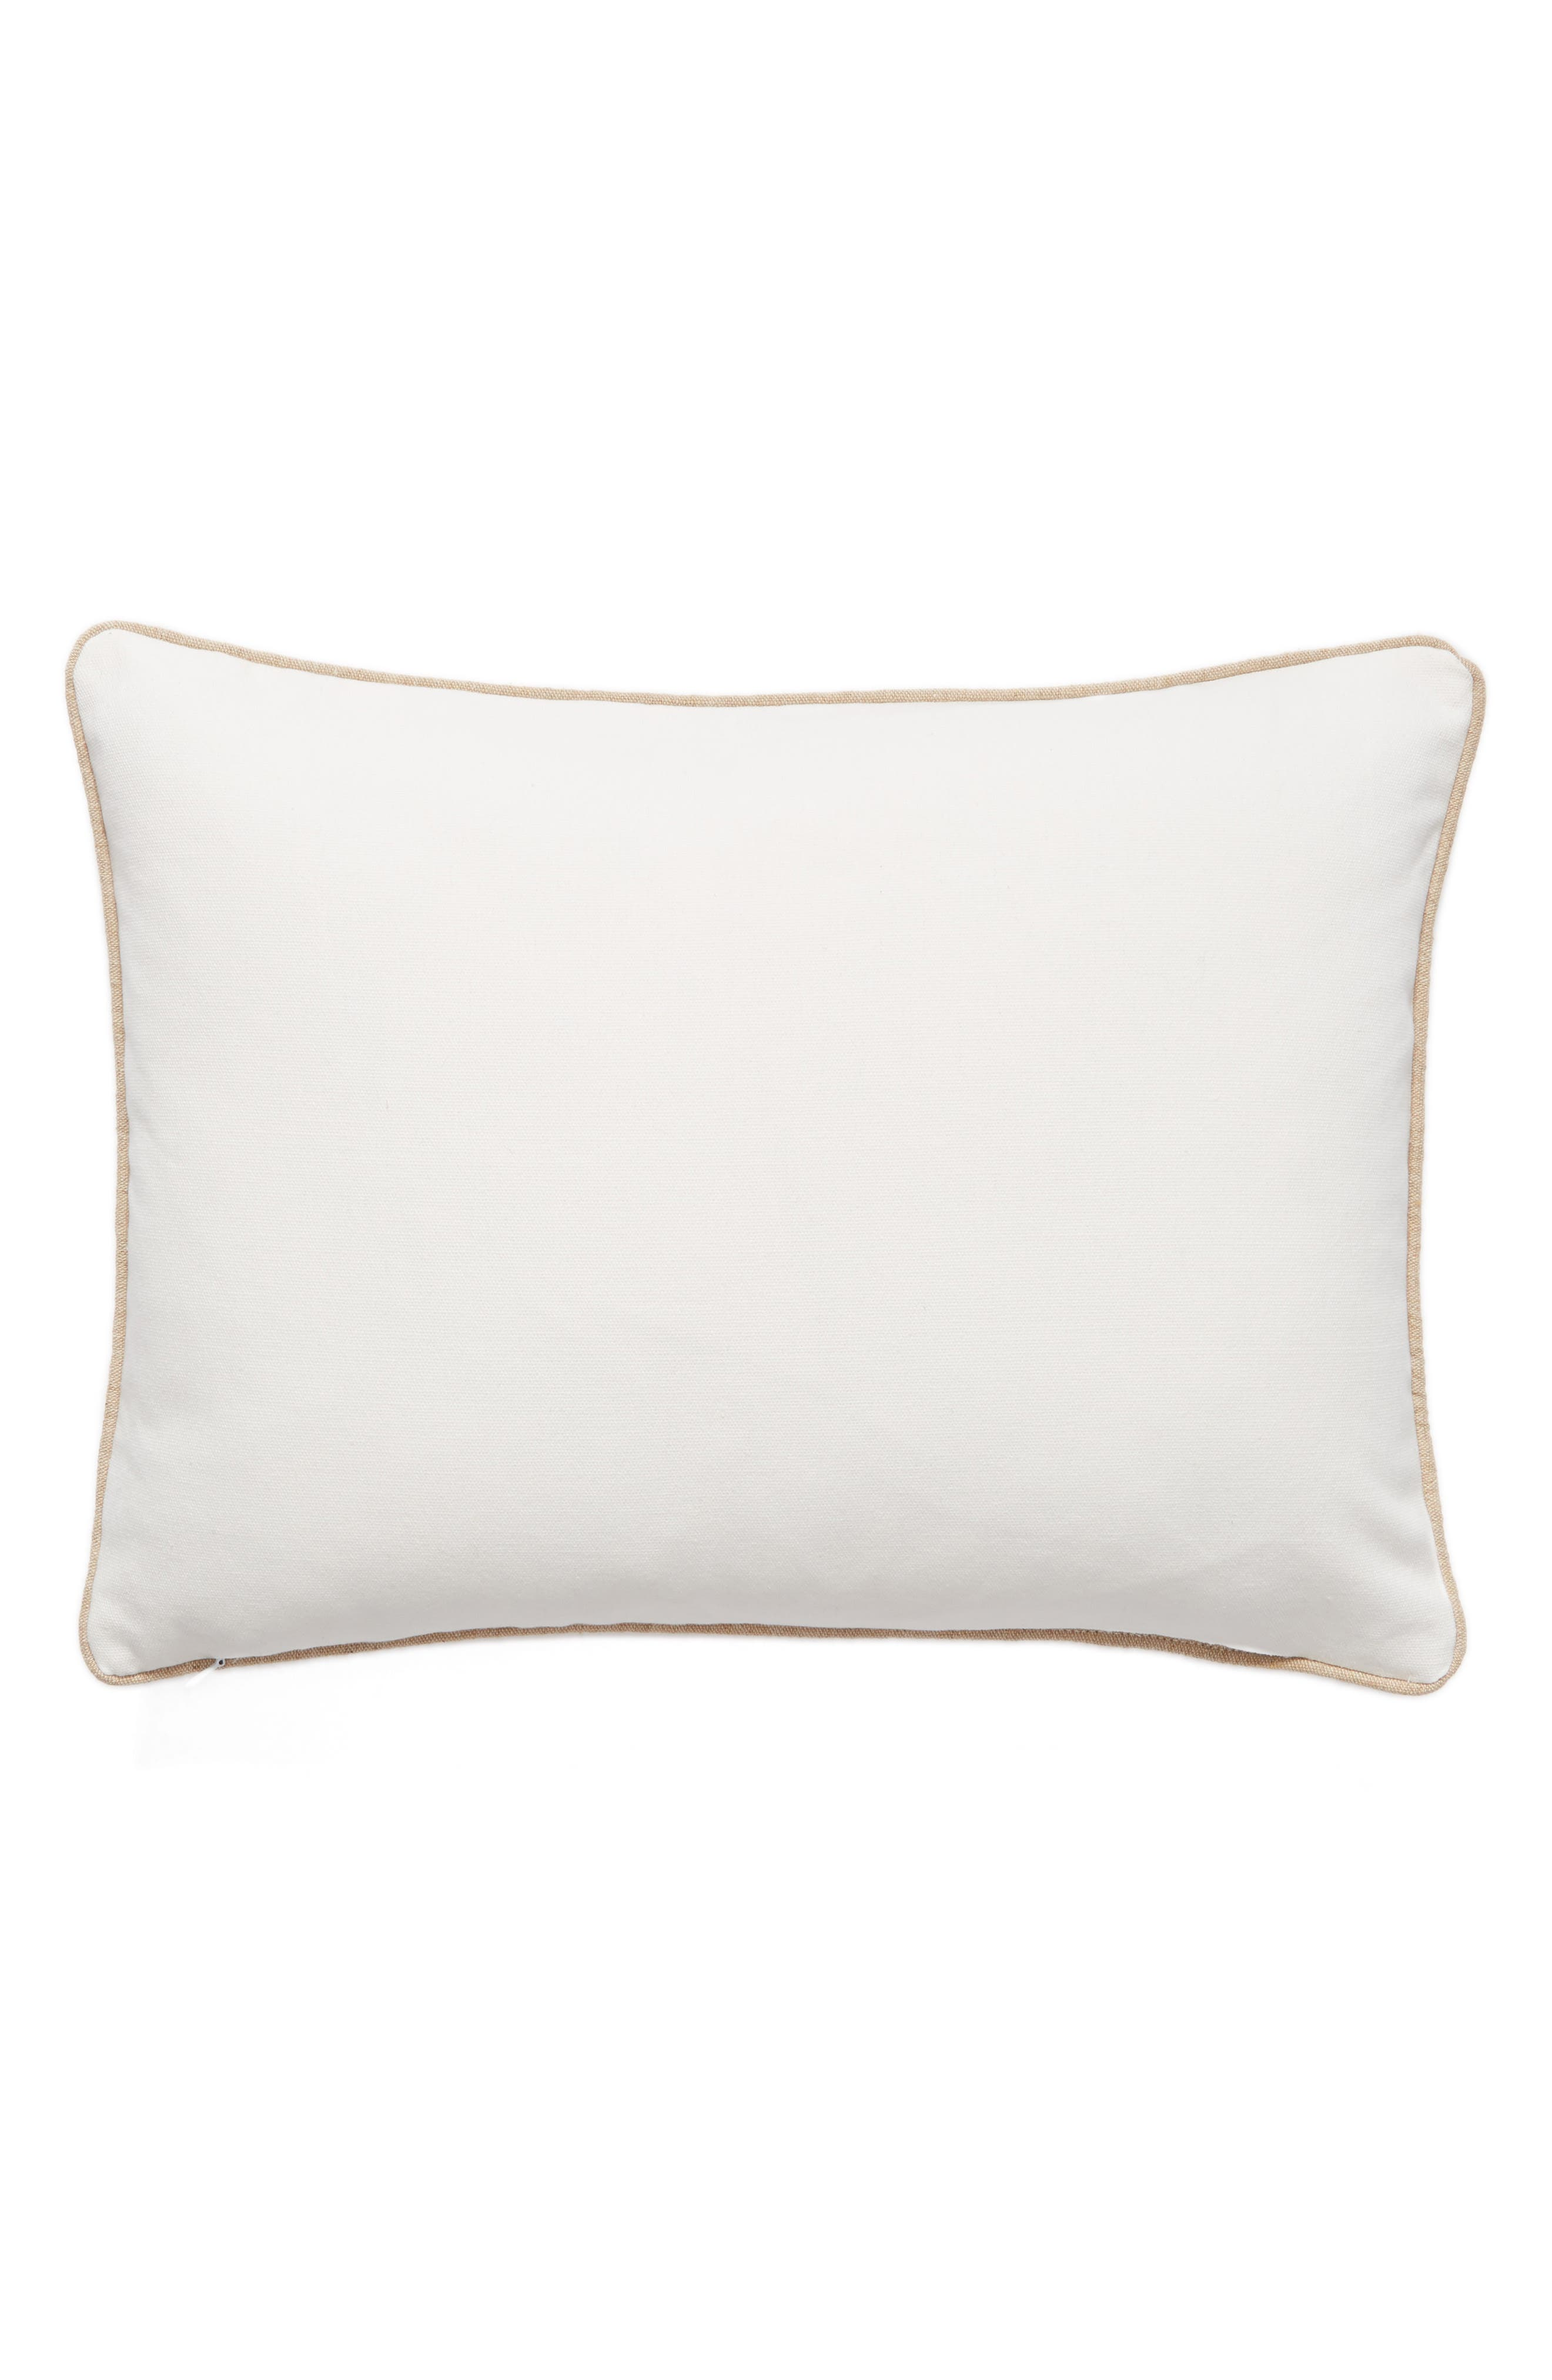 Alternate Image 2  - Levtex Flawless Accent Pillow